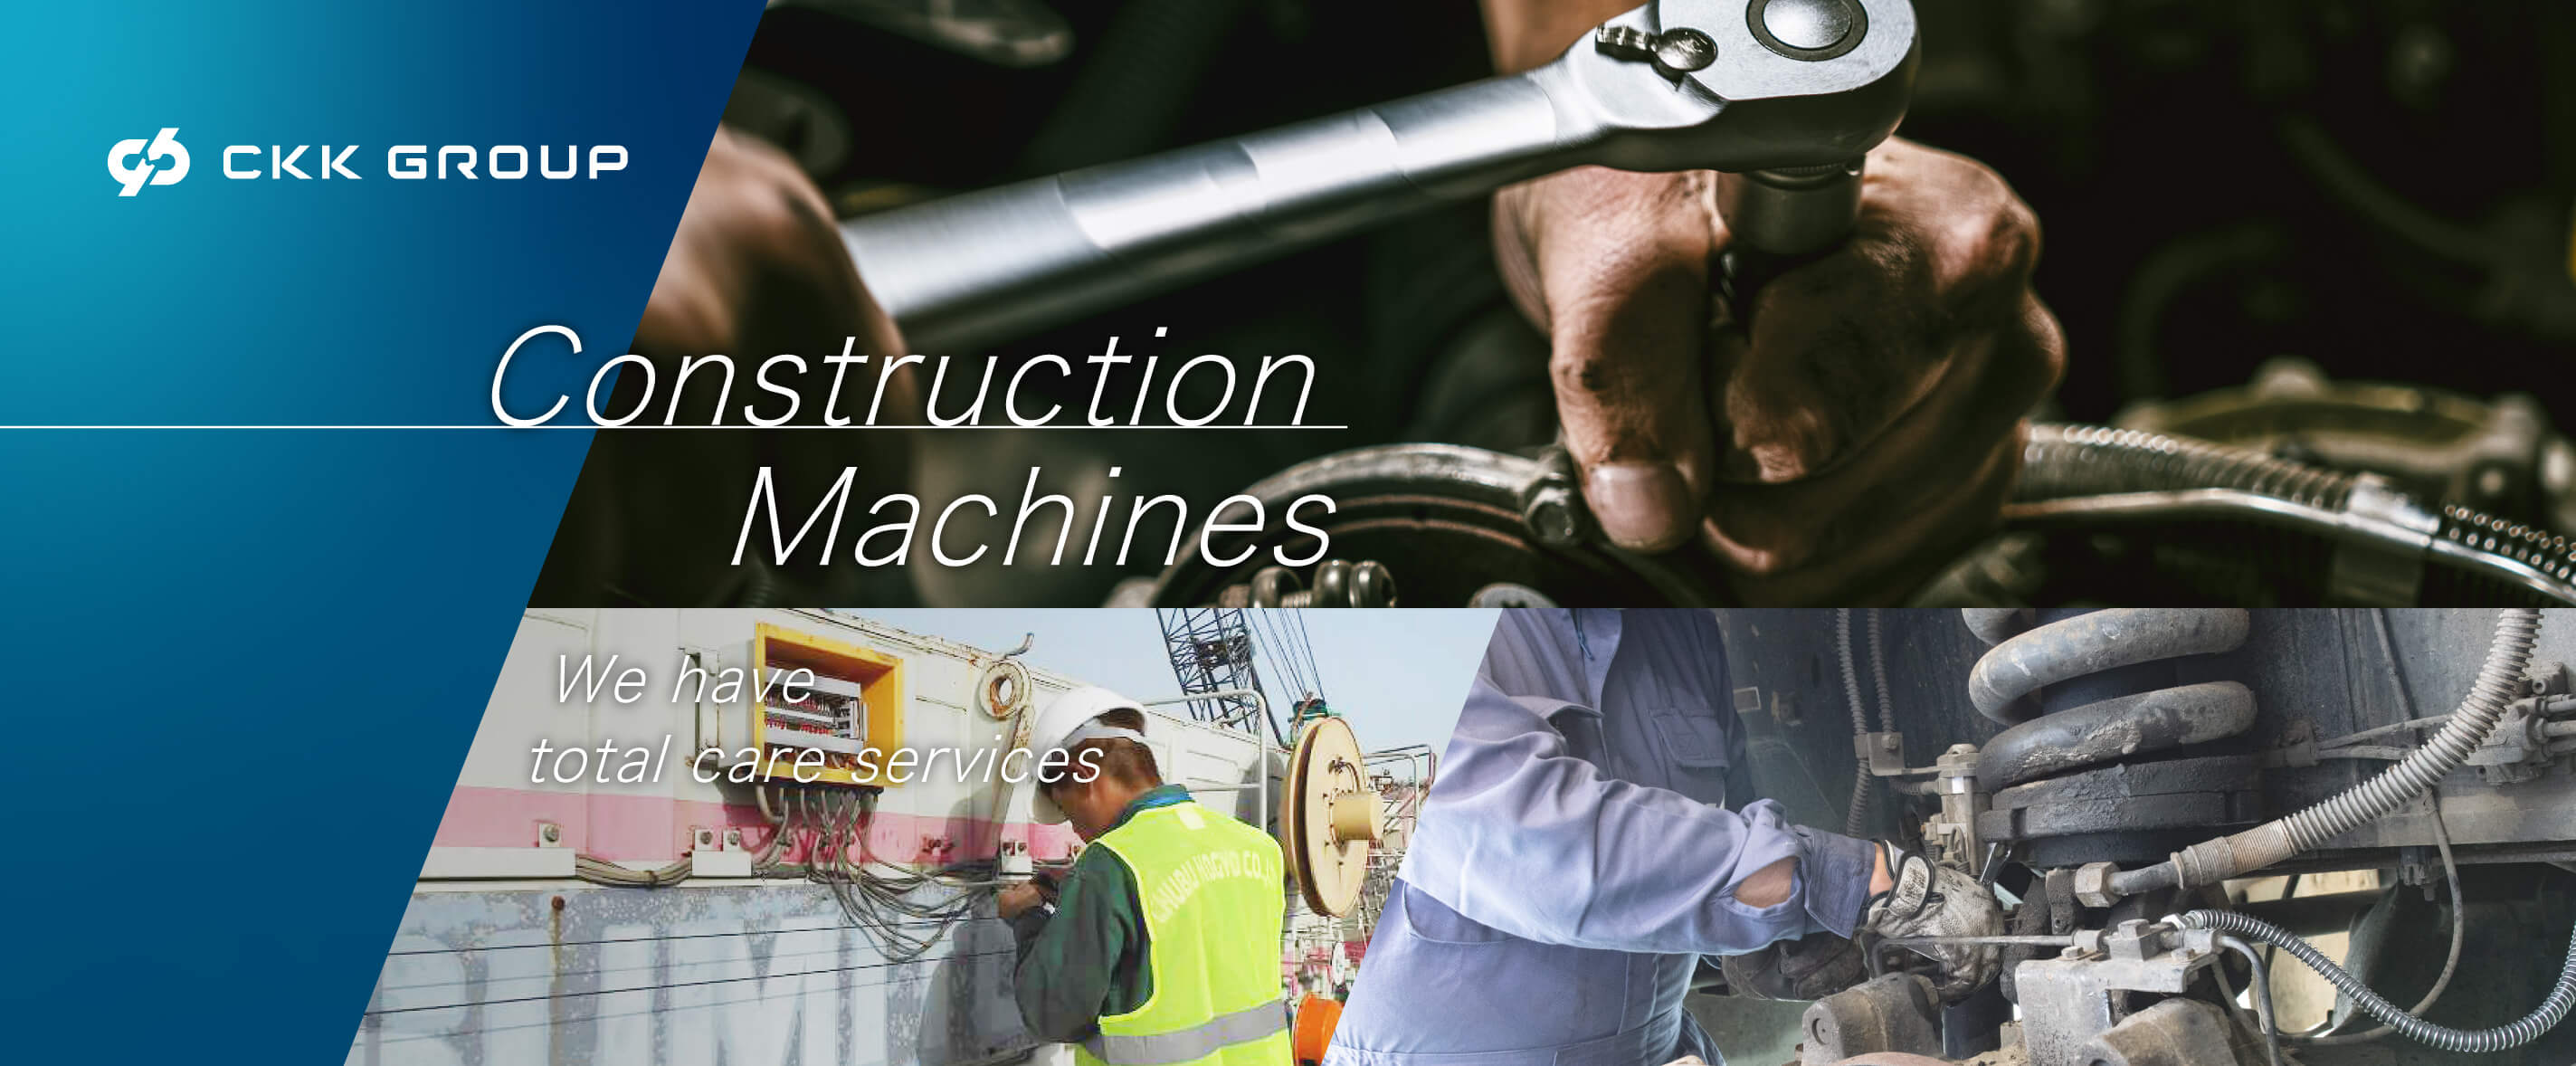 We have total care services for construction machines